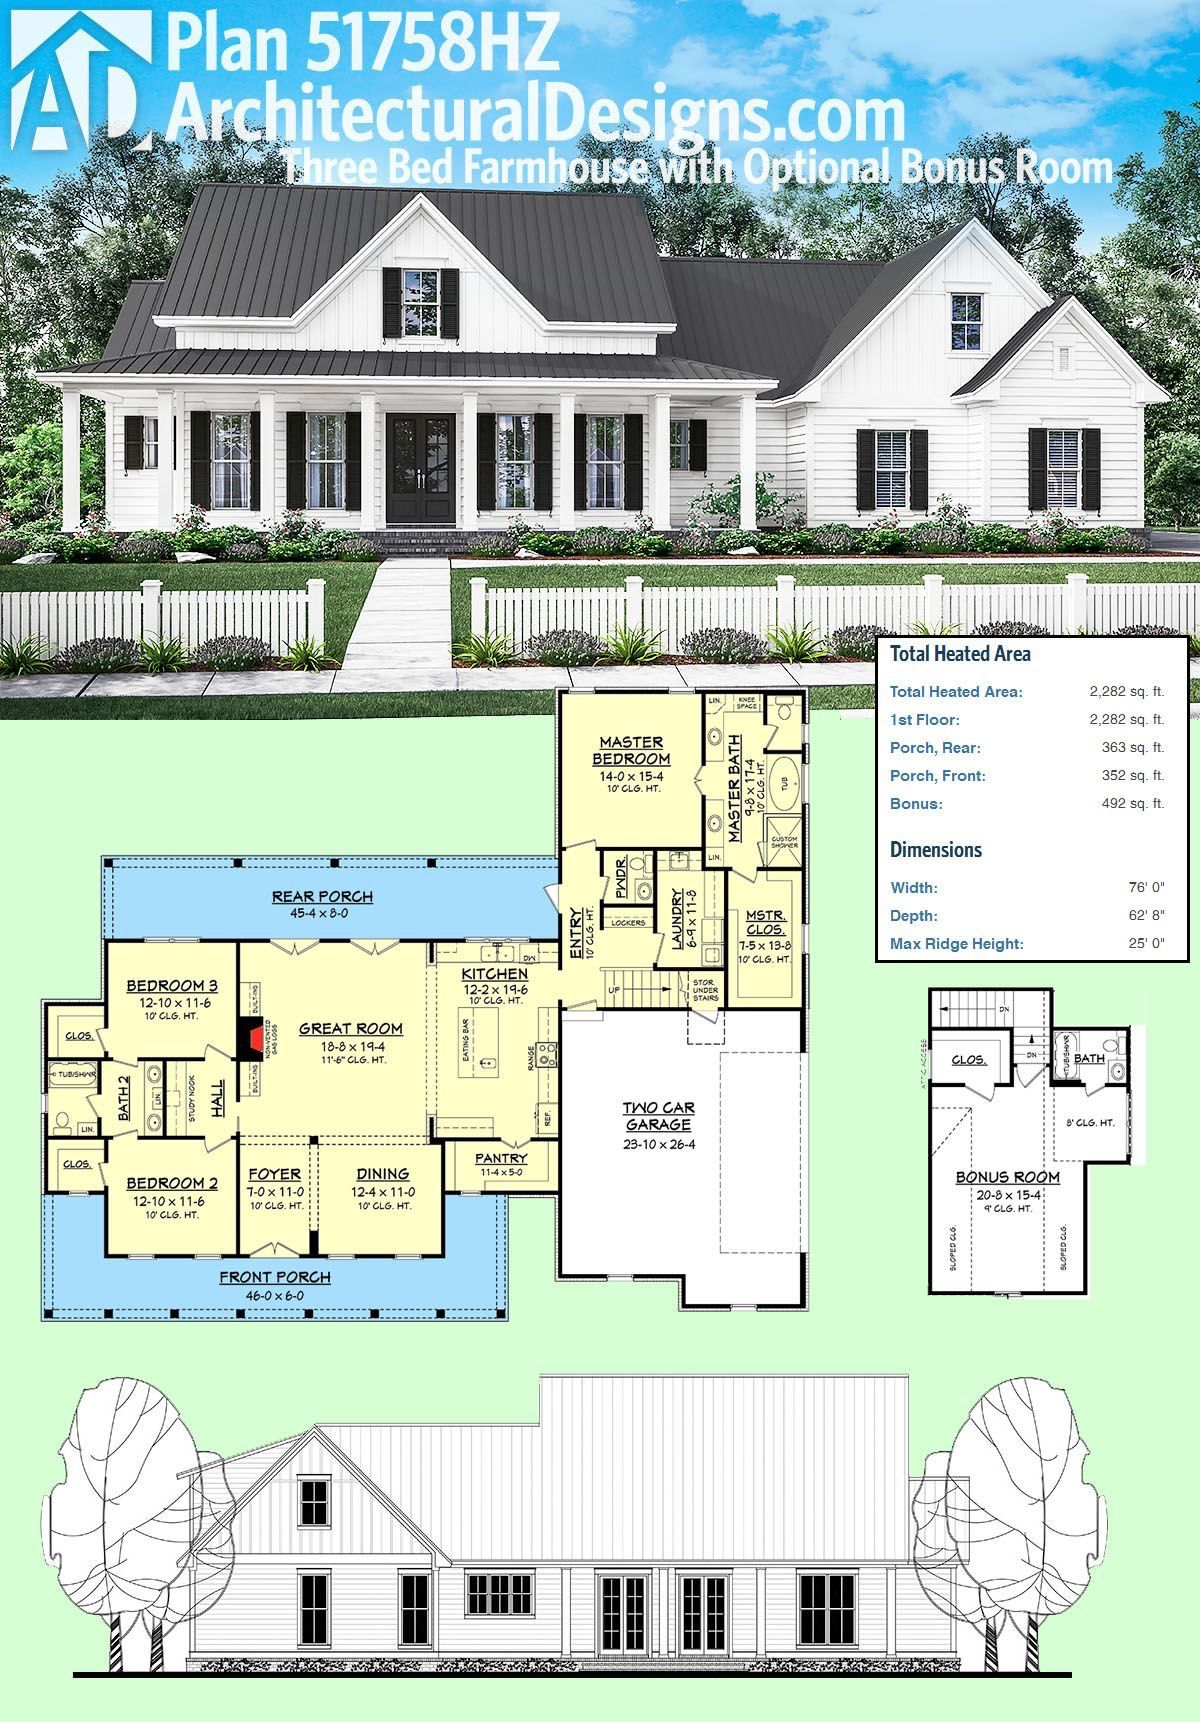 Add A 1 Car Garage And In Law Suite On The Outside Of The